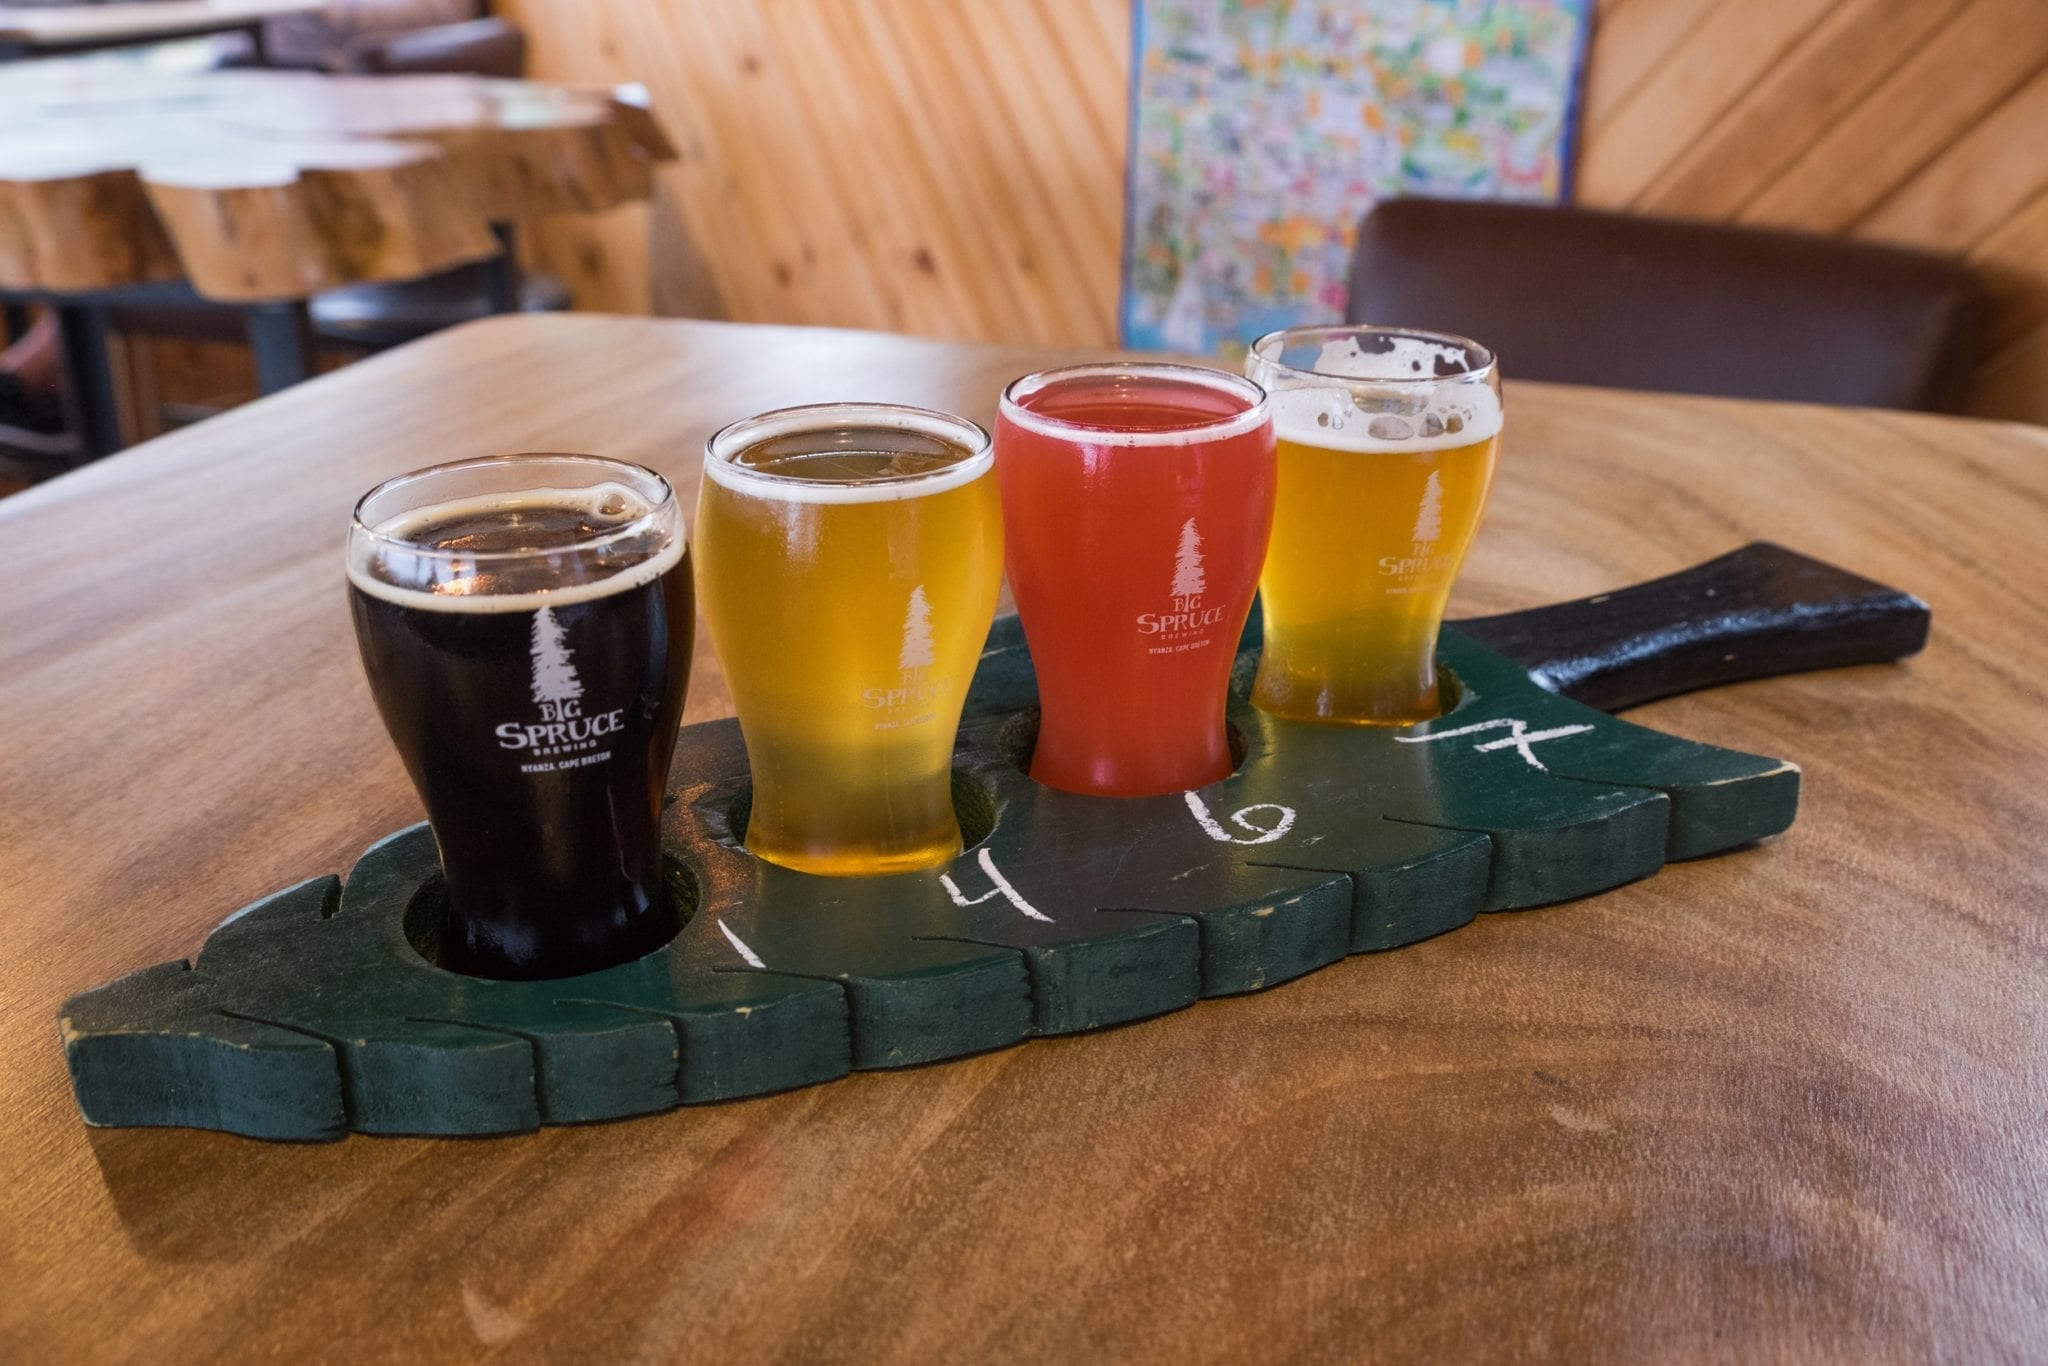 A spruce tree-shaped beer tray holding four small glasses of different beers.